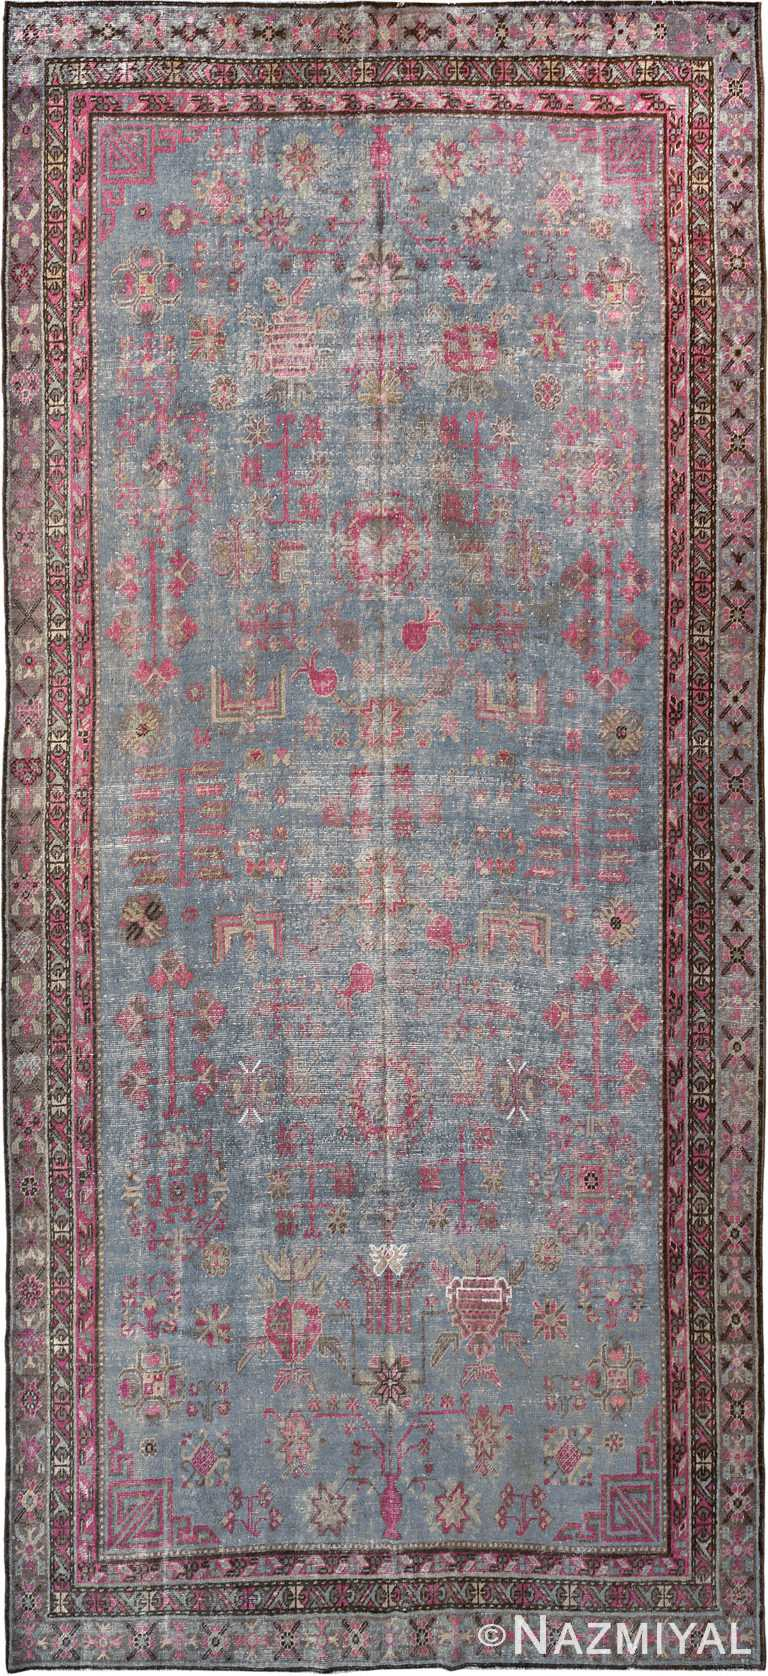 Antique Blue And Purple Shabby Chic Khotan Rug #90048 by Nazmiyal Antique Rugs